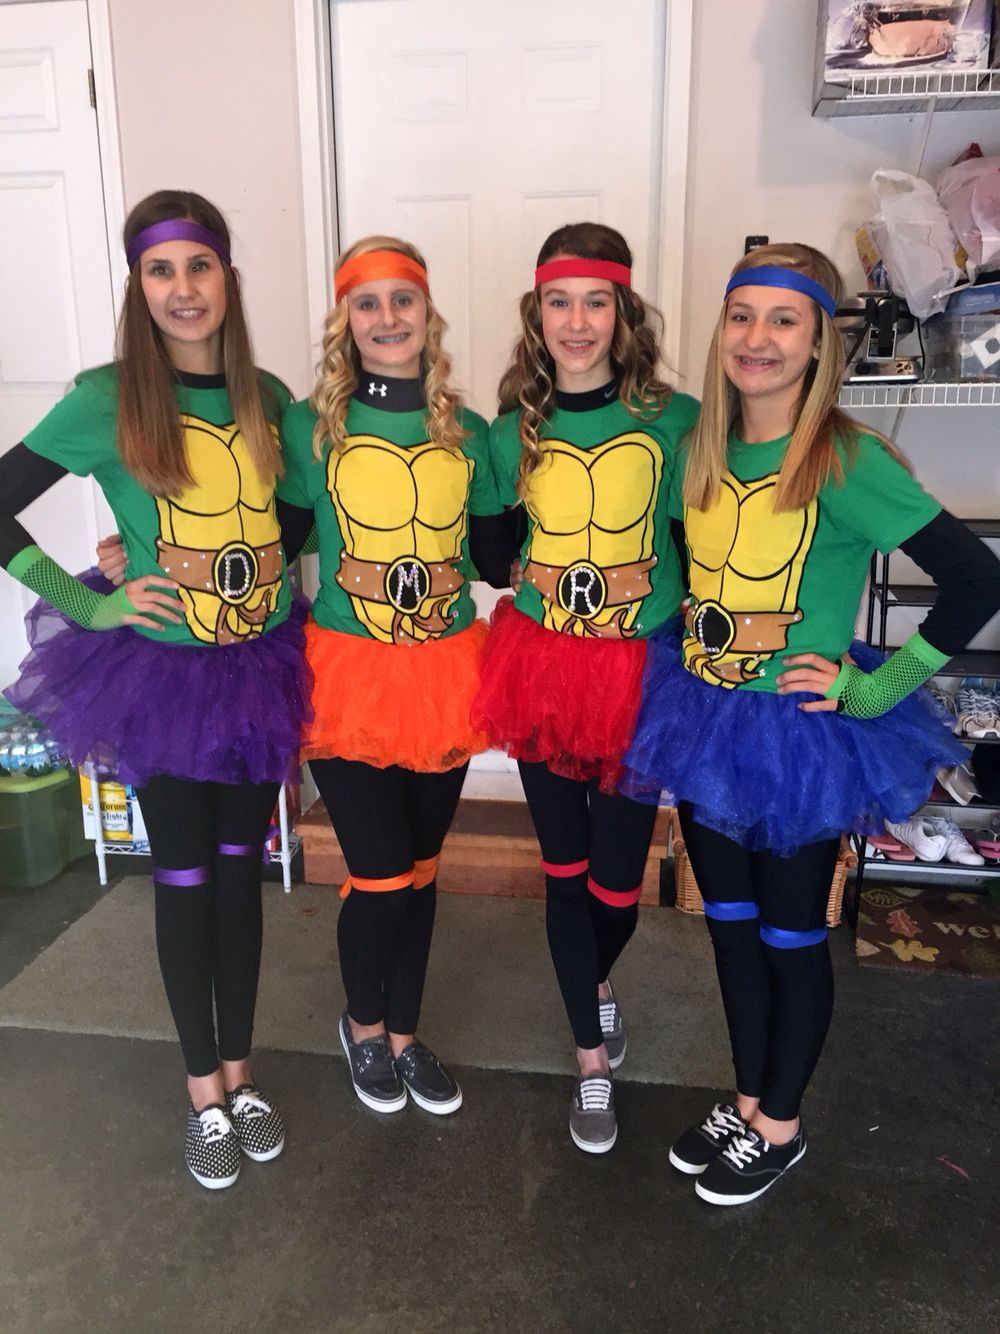 Ninja Turtle Teen Halloween Costume | Halloween | Pinterest | Teen halloween costumes Ninja turtles and Halloween costumes  sc 1 st  Pinterest & Ninja Turtle Teen Halloween Costume | Halloween | Pinterest | Teen ...